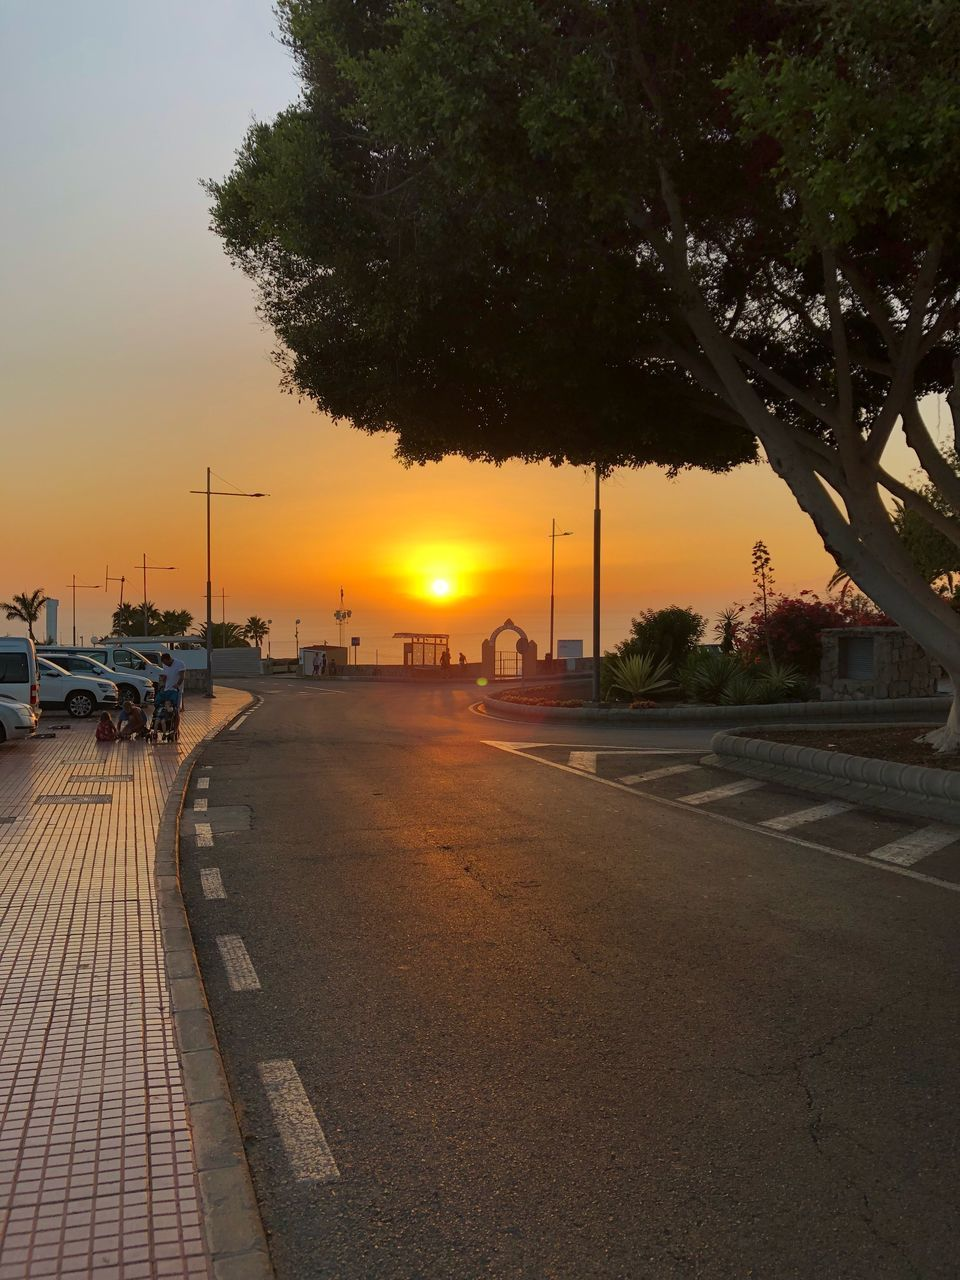 SCENIC VIEW OF STREET AGAINST SKY DURING SUNSET